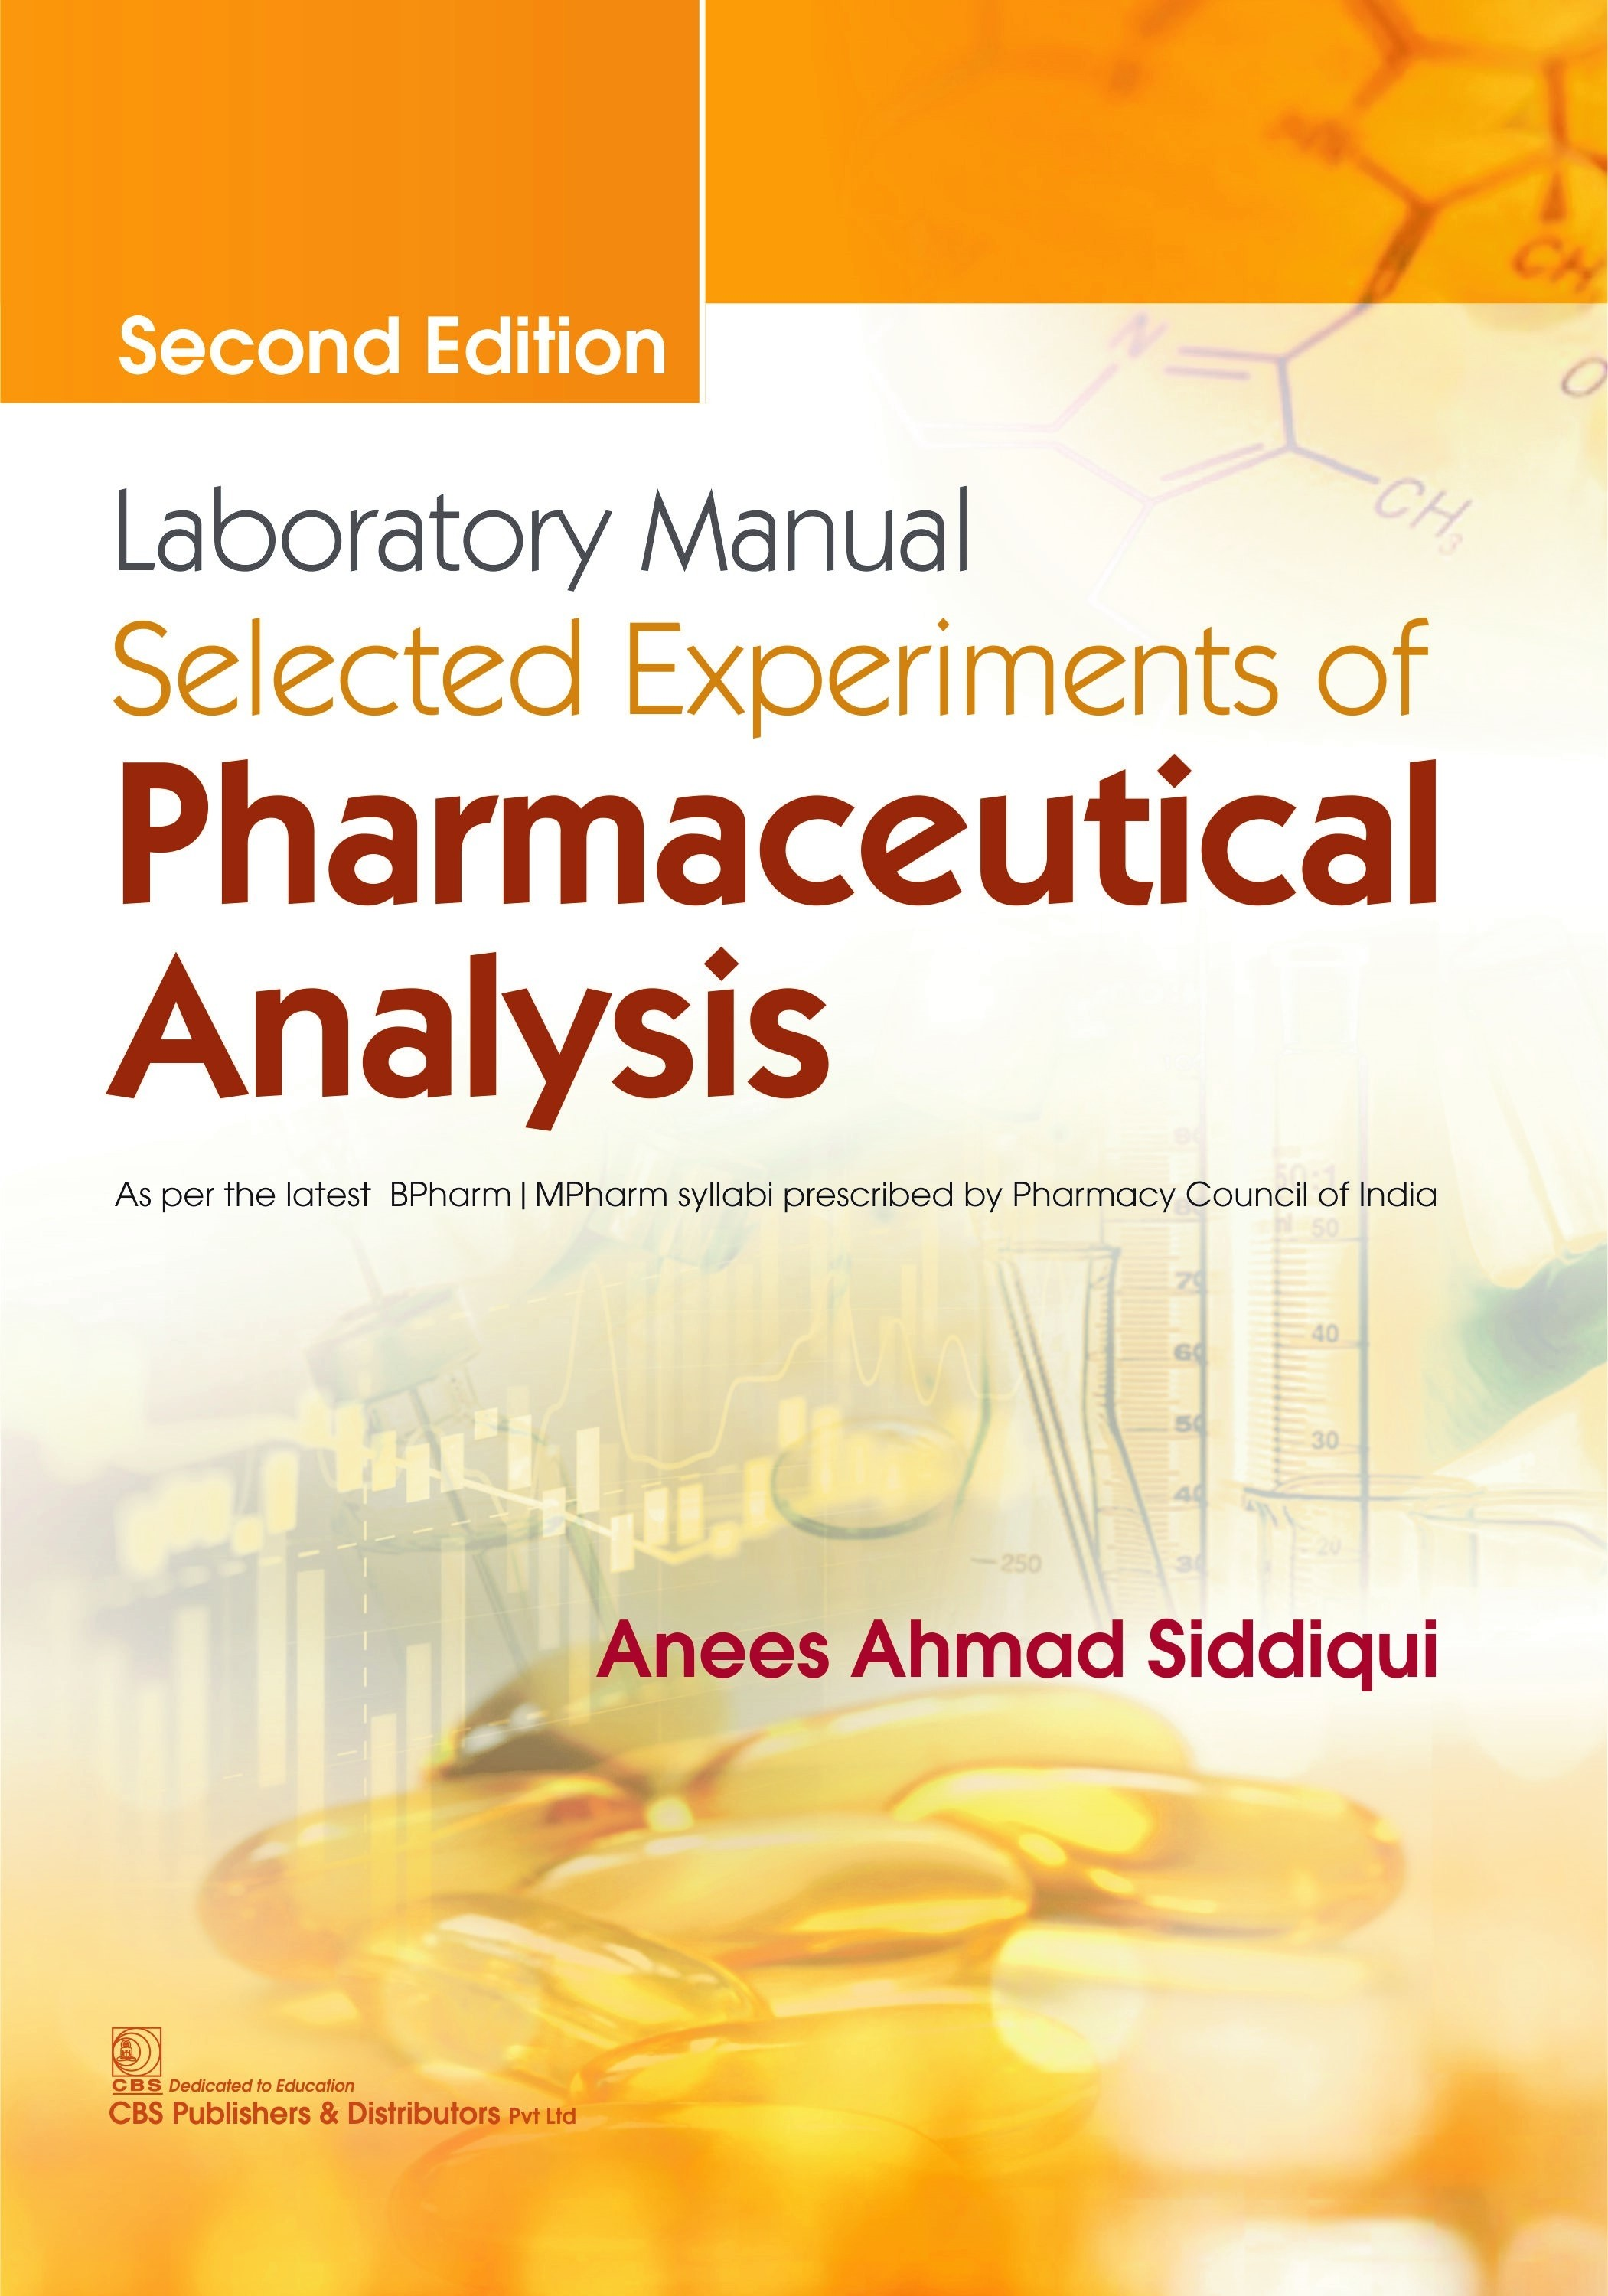 Laboratory Manual Selected Experiments of Pharmaceutical Analysis |9789389261769 | Anees Ahmad Siddiqui